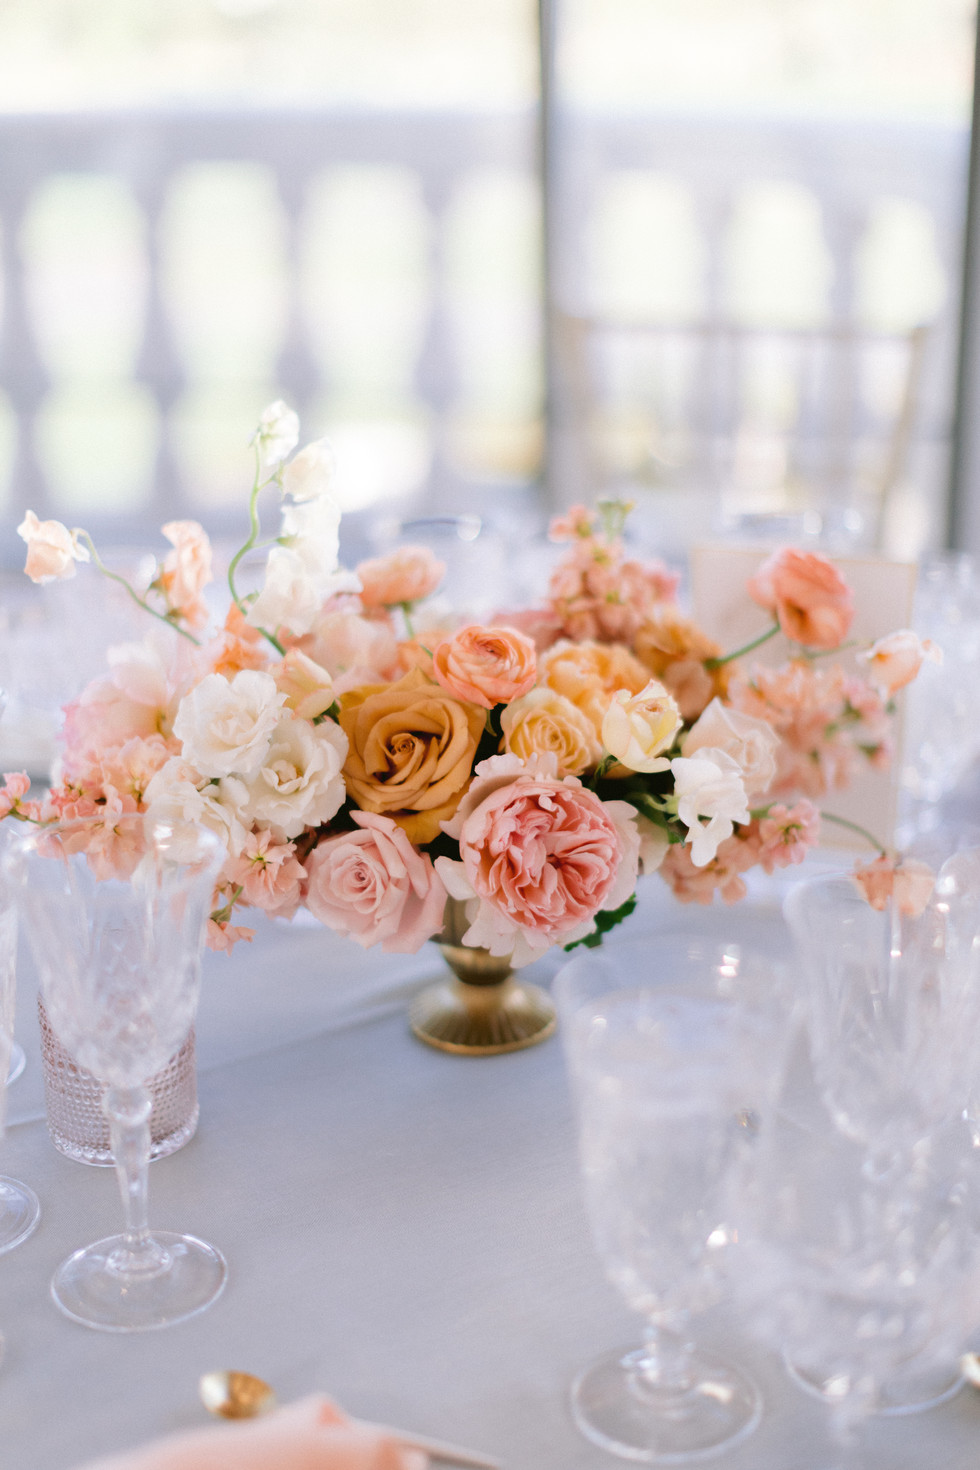 Peach, pink, and gold wedding centerpiece. Photo: Susie and Will